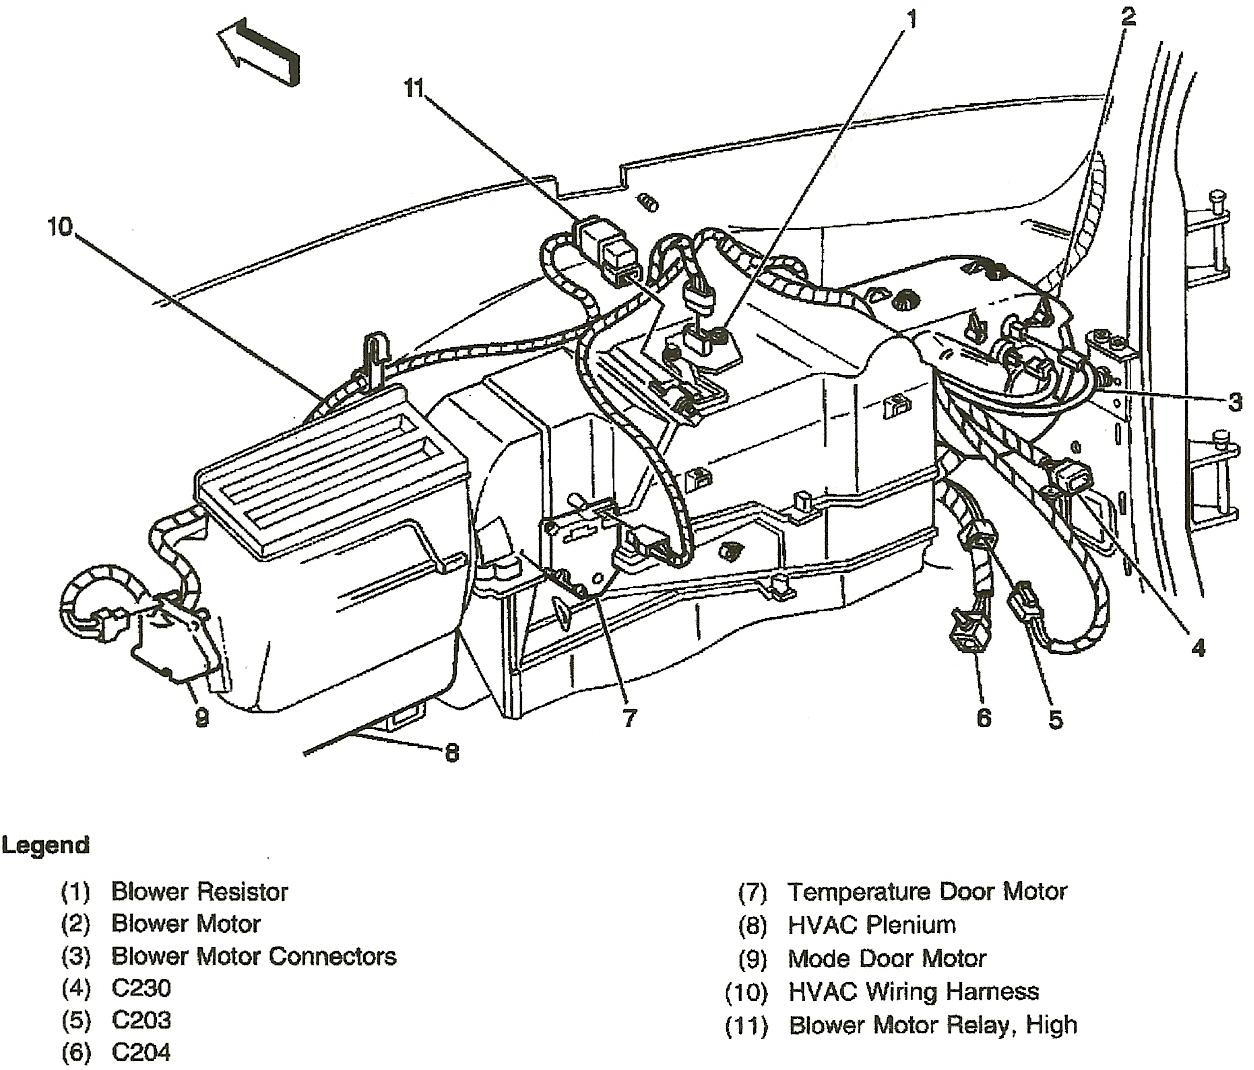 2002 chevy silverado parts diagrams heater wiring diagram schematics \u2022 2002 Ford Ranger Heater Diagram 2002 chevy silverado parts diagrams heater wiring diagram library rh 17 desa penago1 com 2002 chevy